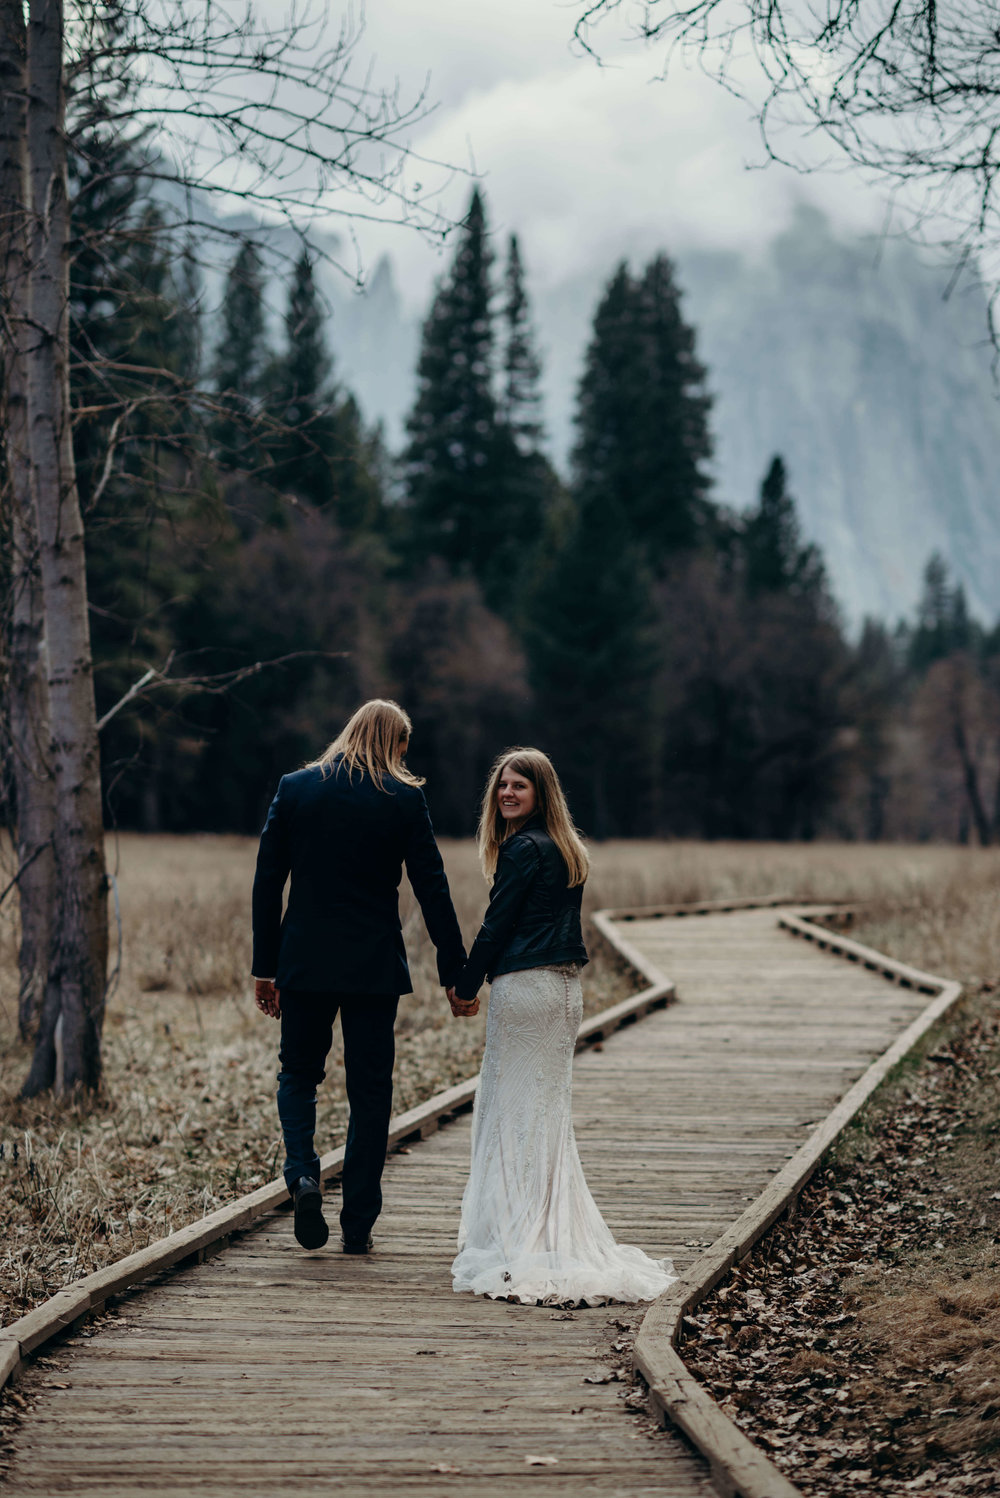 Adventure-Elopement-Yosemite-Valley-21.jpg